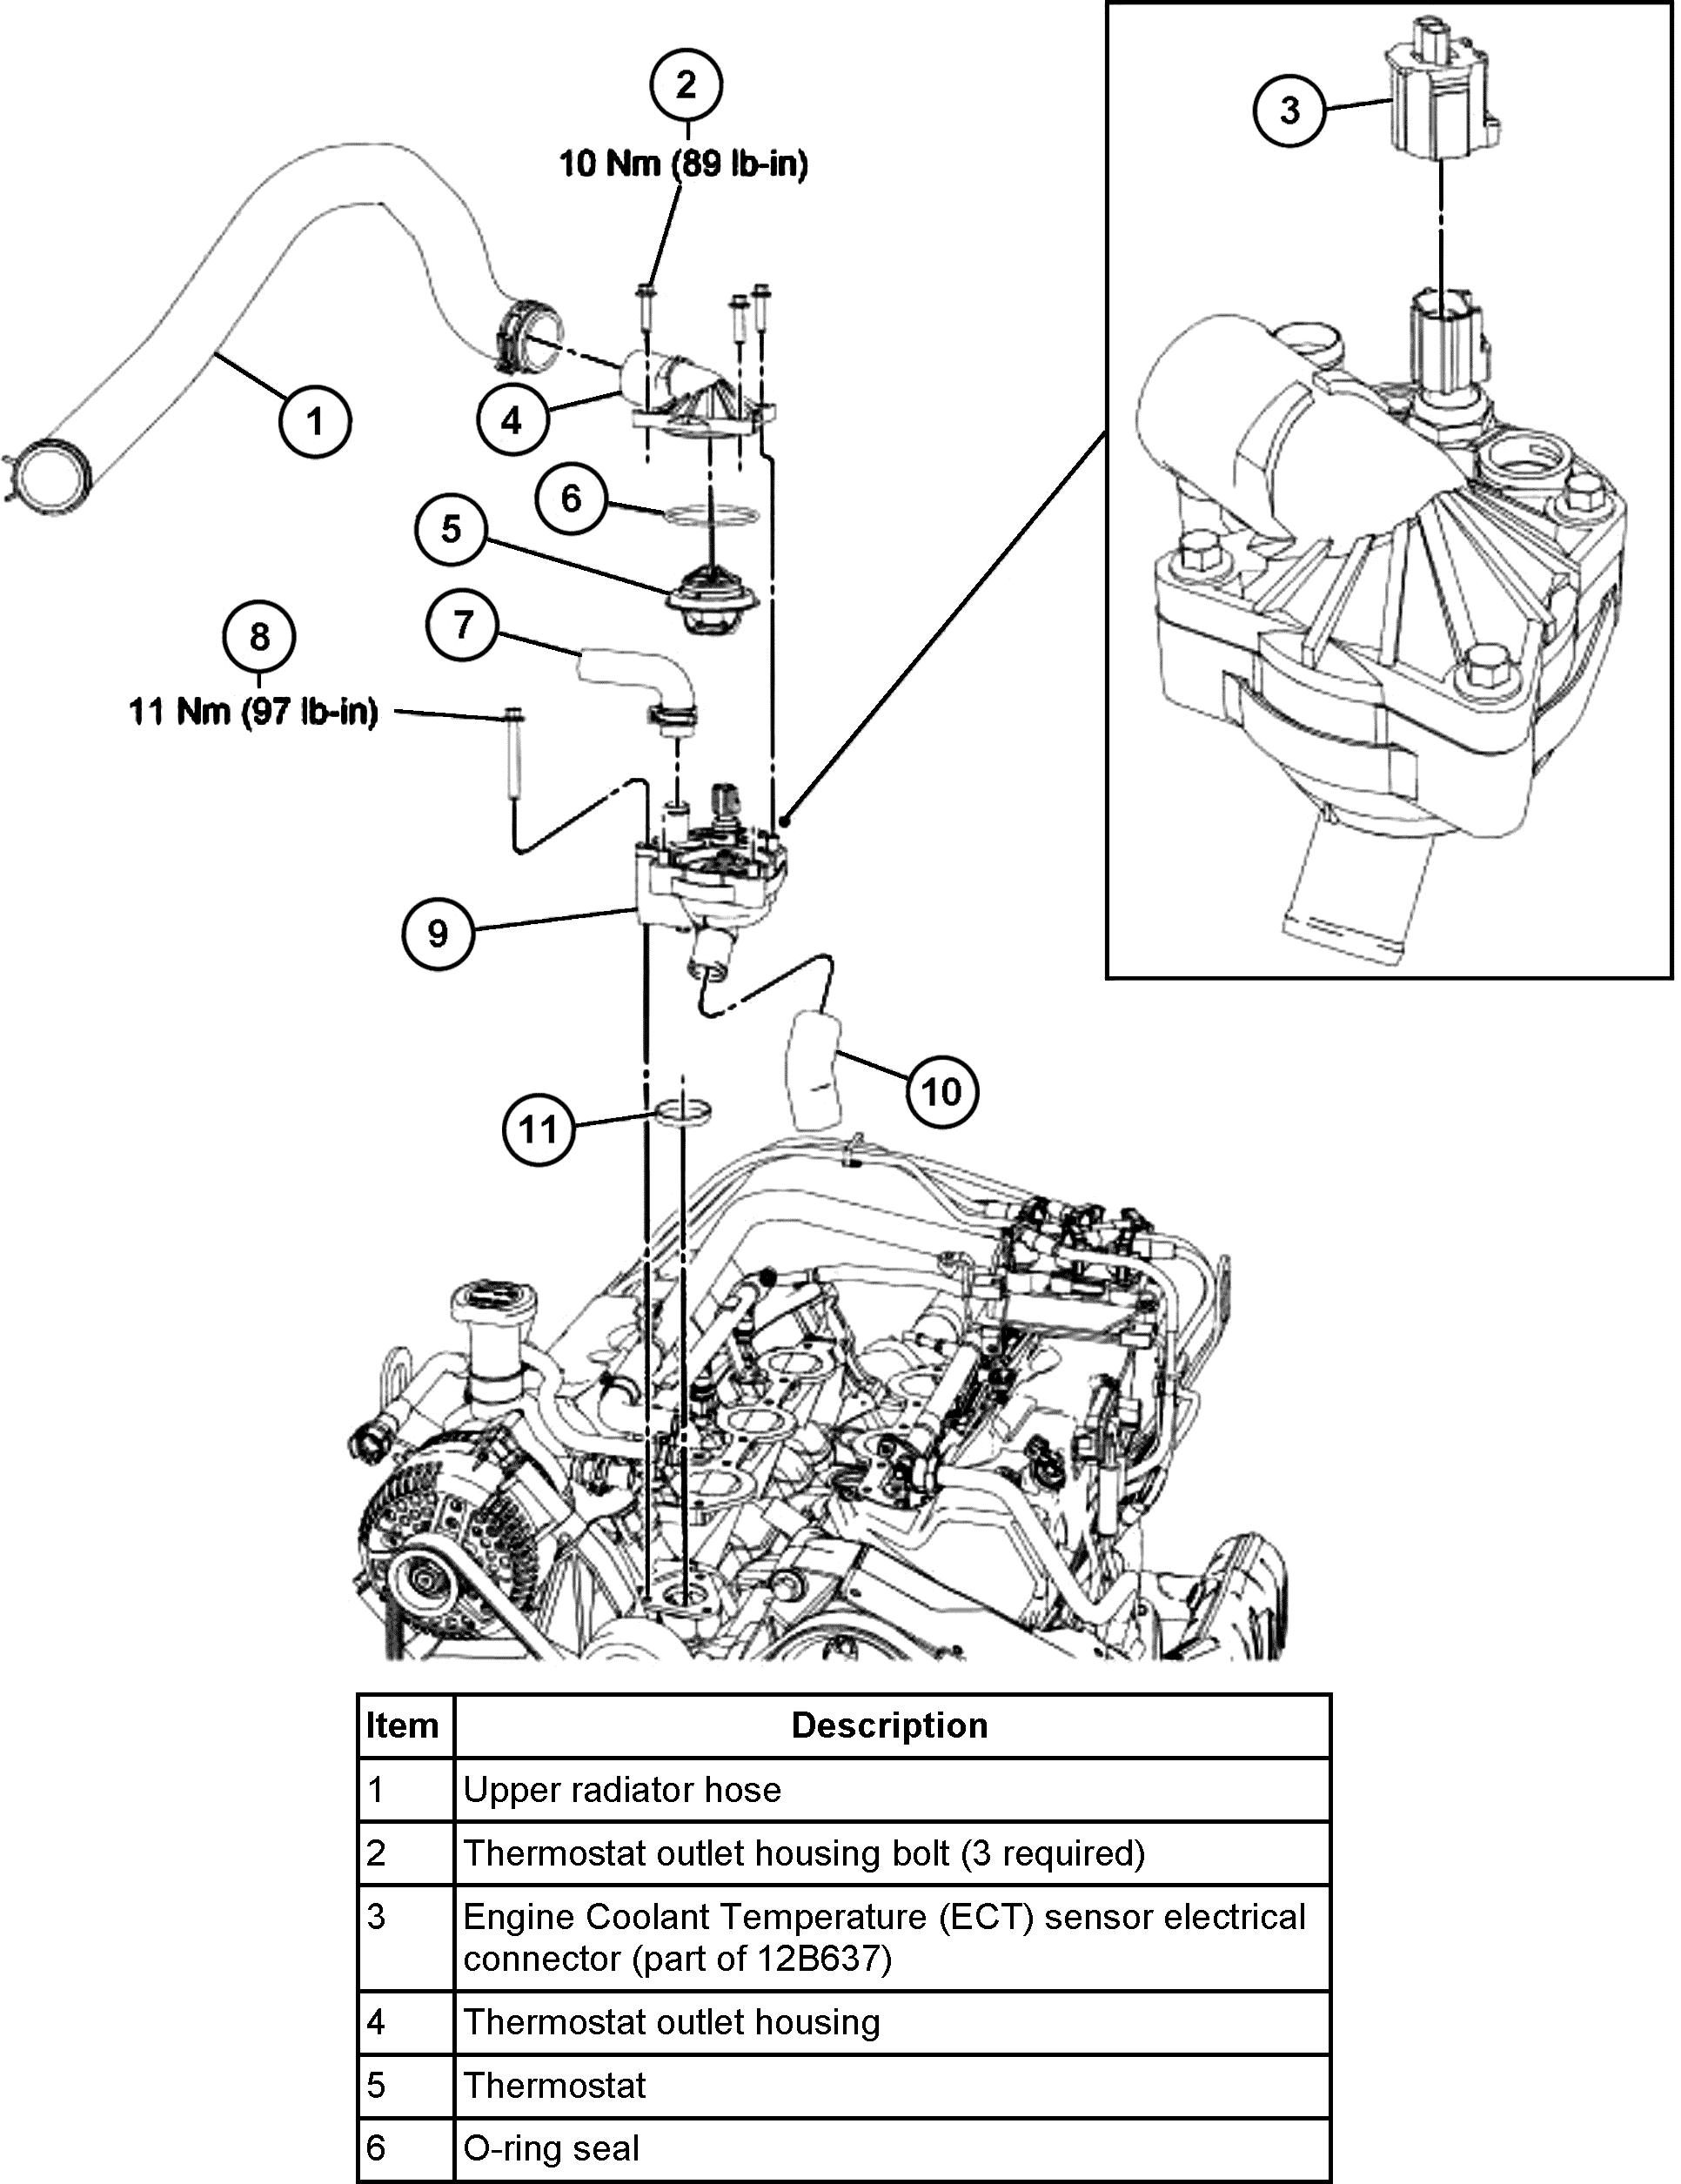 DIAGRAM] 2003 Ford 4 0 Sohc Engine Cooling System Diagram FULL Version HD  Quality System Diagram - SSTXPWIRING.CONCESSIONARIABELOGISENIGALLIA.ITconcessionariabelogisenigallia.it